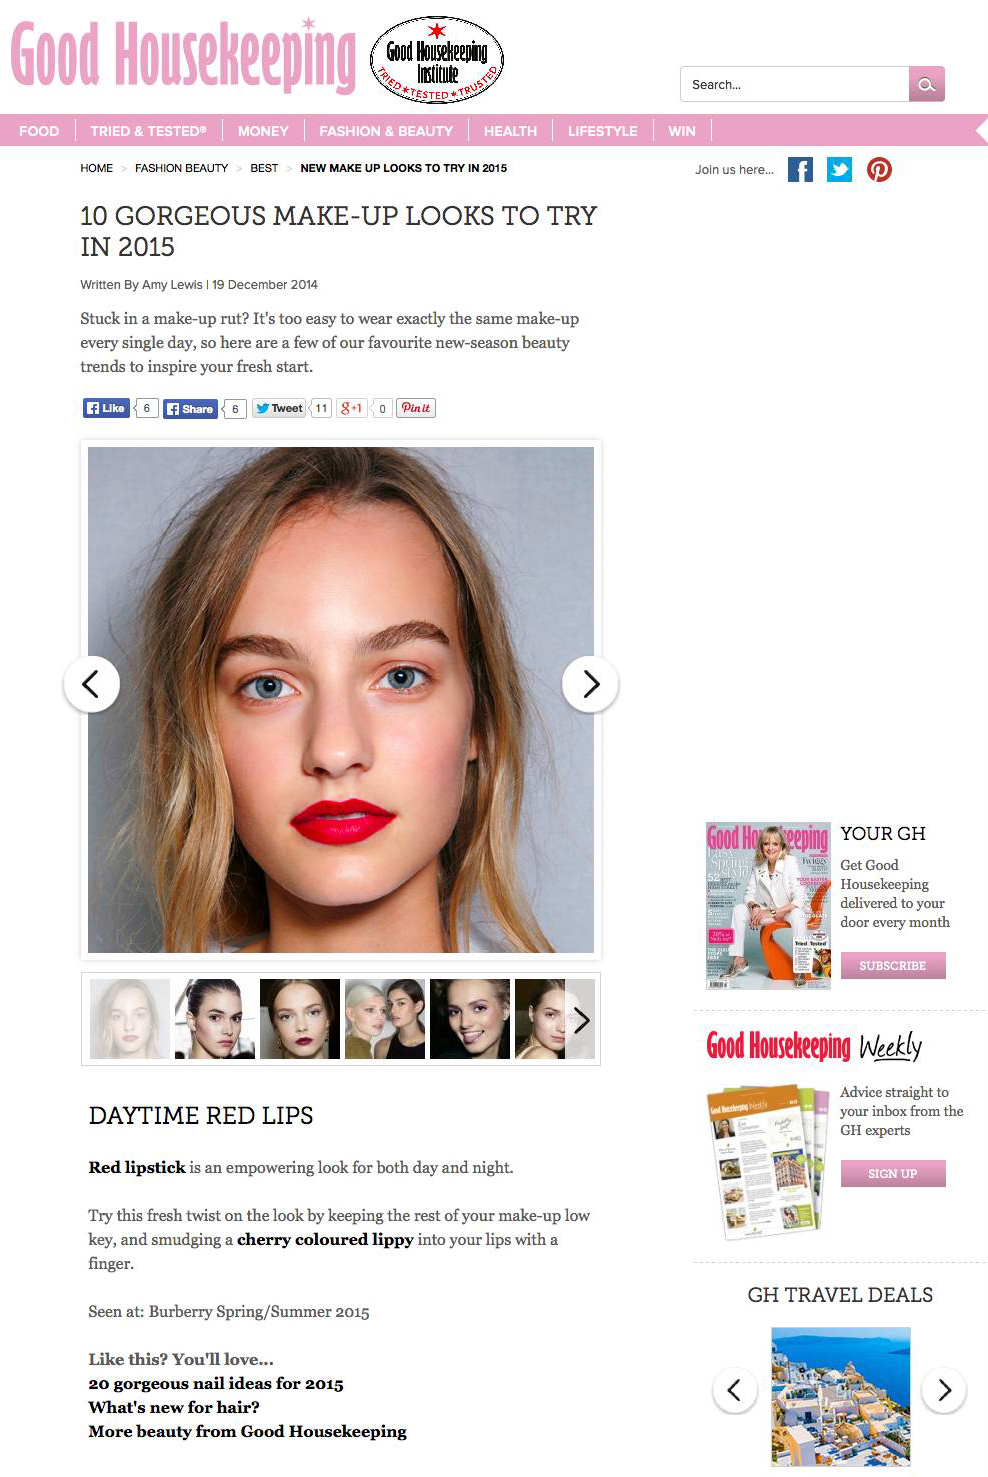 New_make-up_looks_to_try_in_2015_-_Beauty_Trends_-_Good_Housekeeping_-_2015-03-17_23.05.01.png